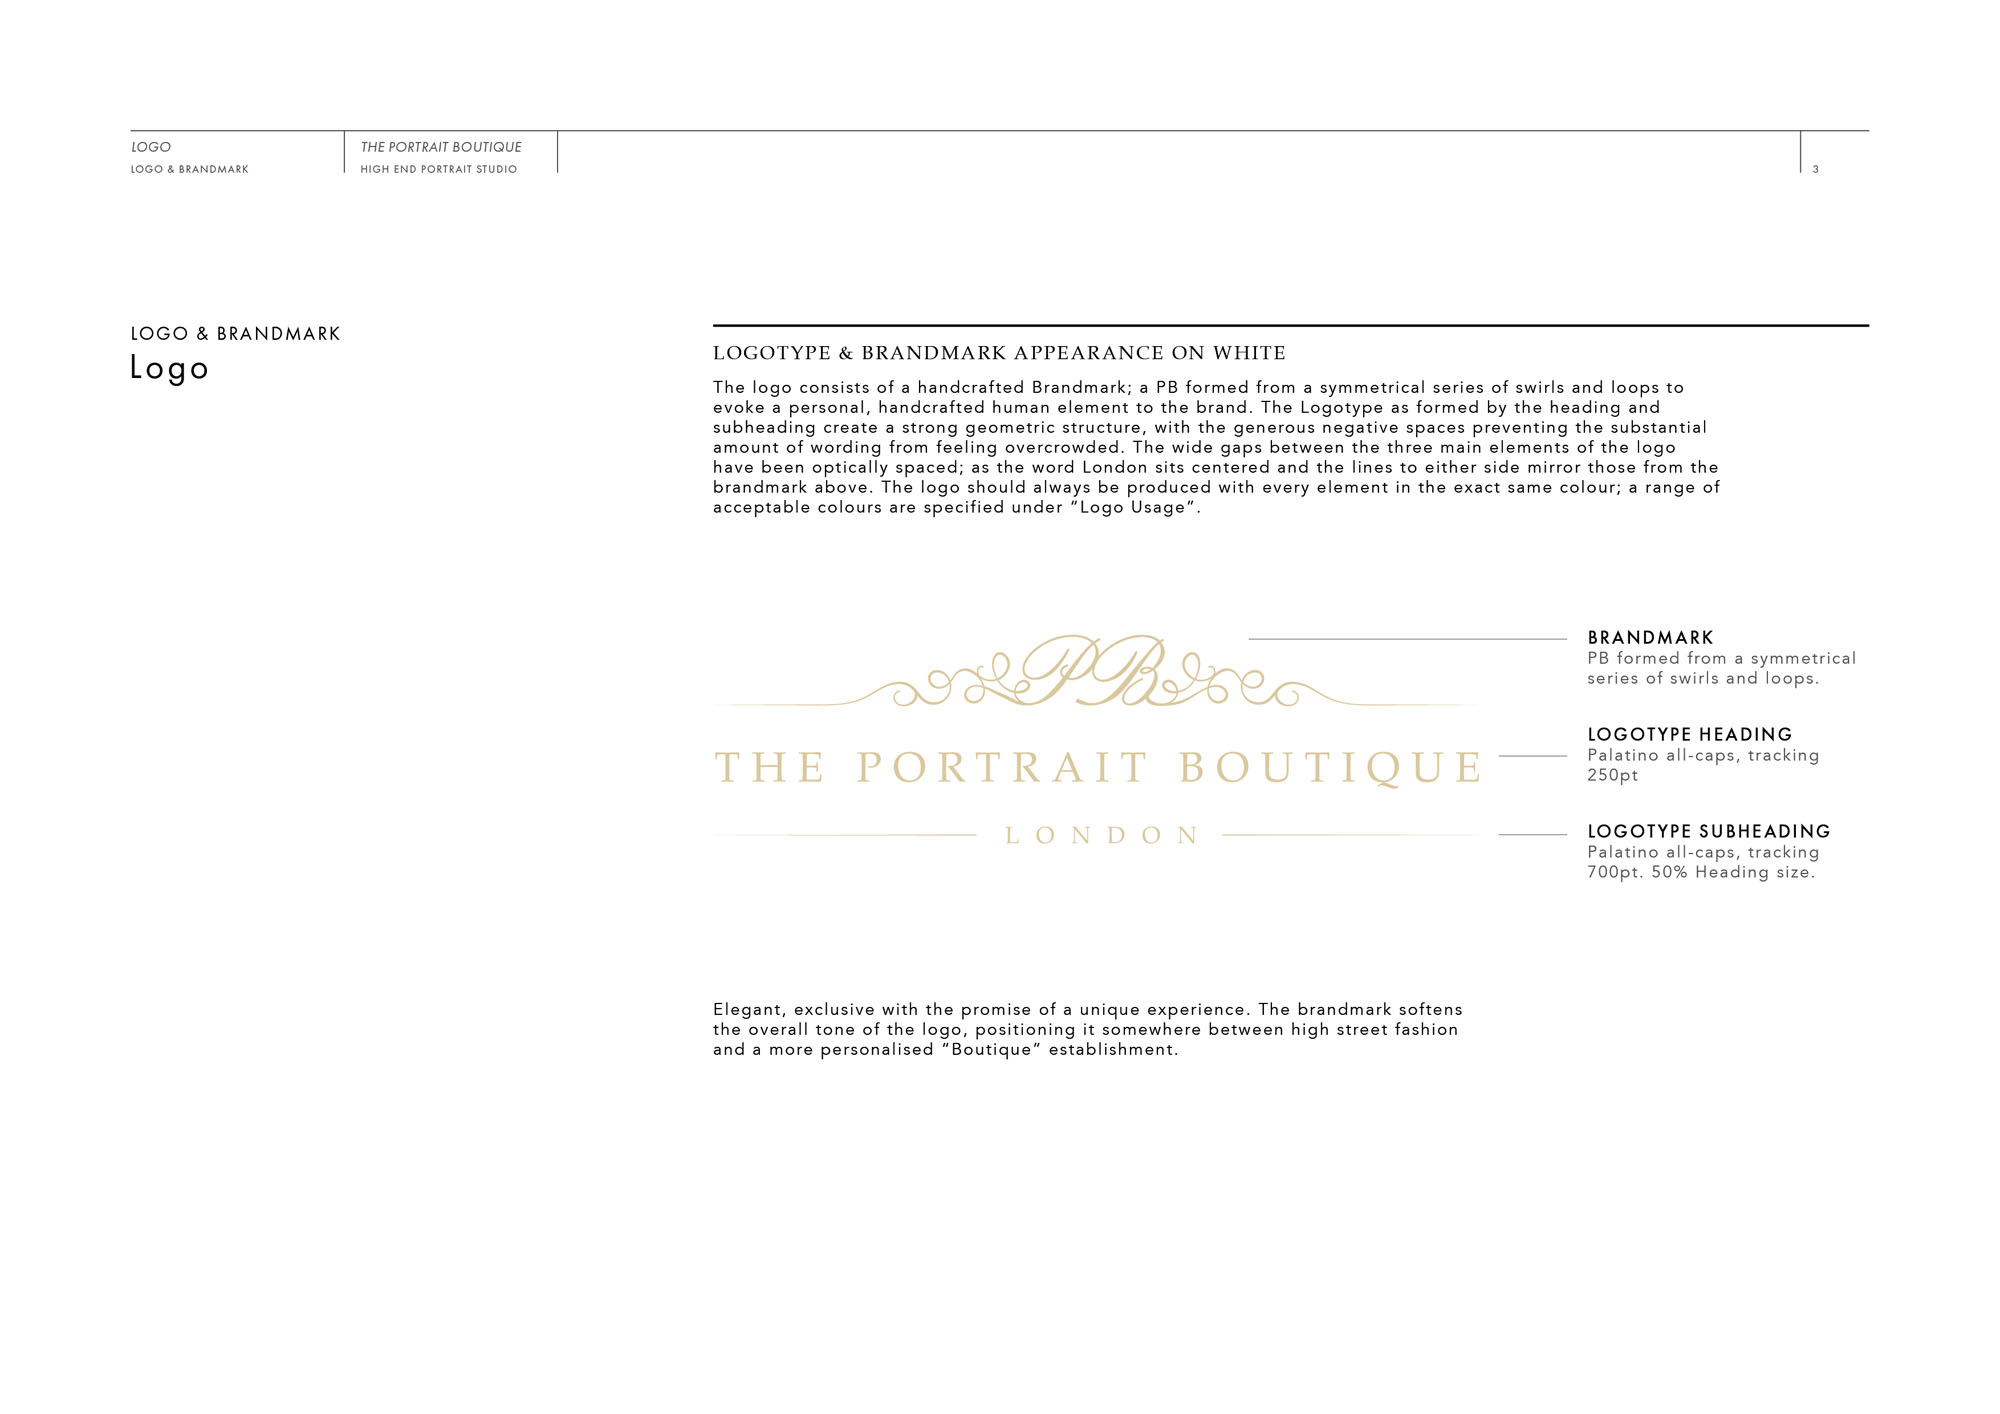 the_portrait_boutique_london_brand_identity05